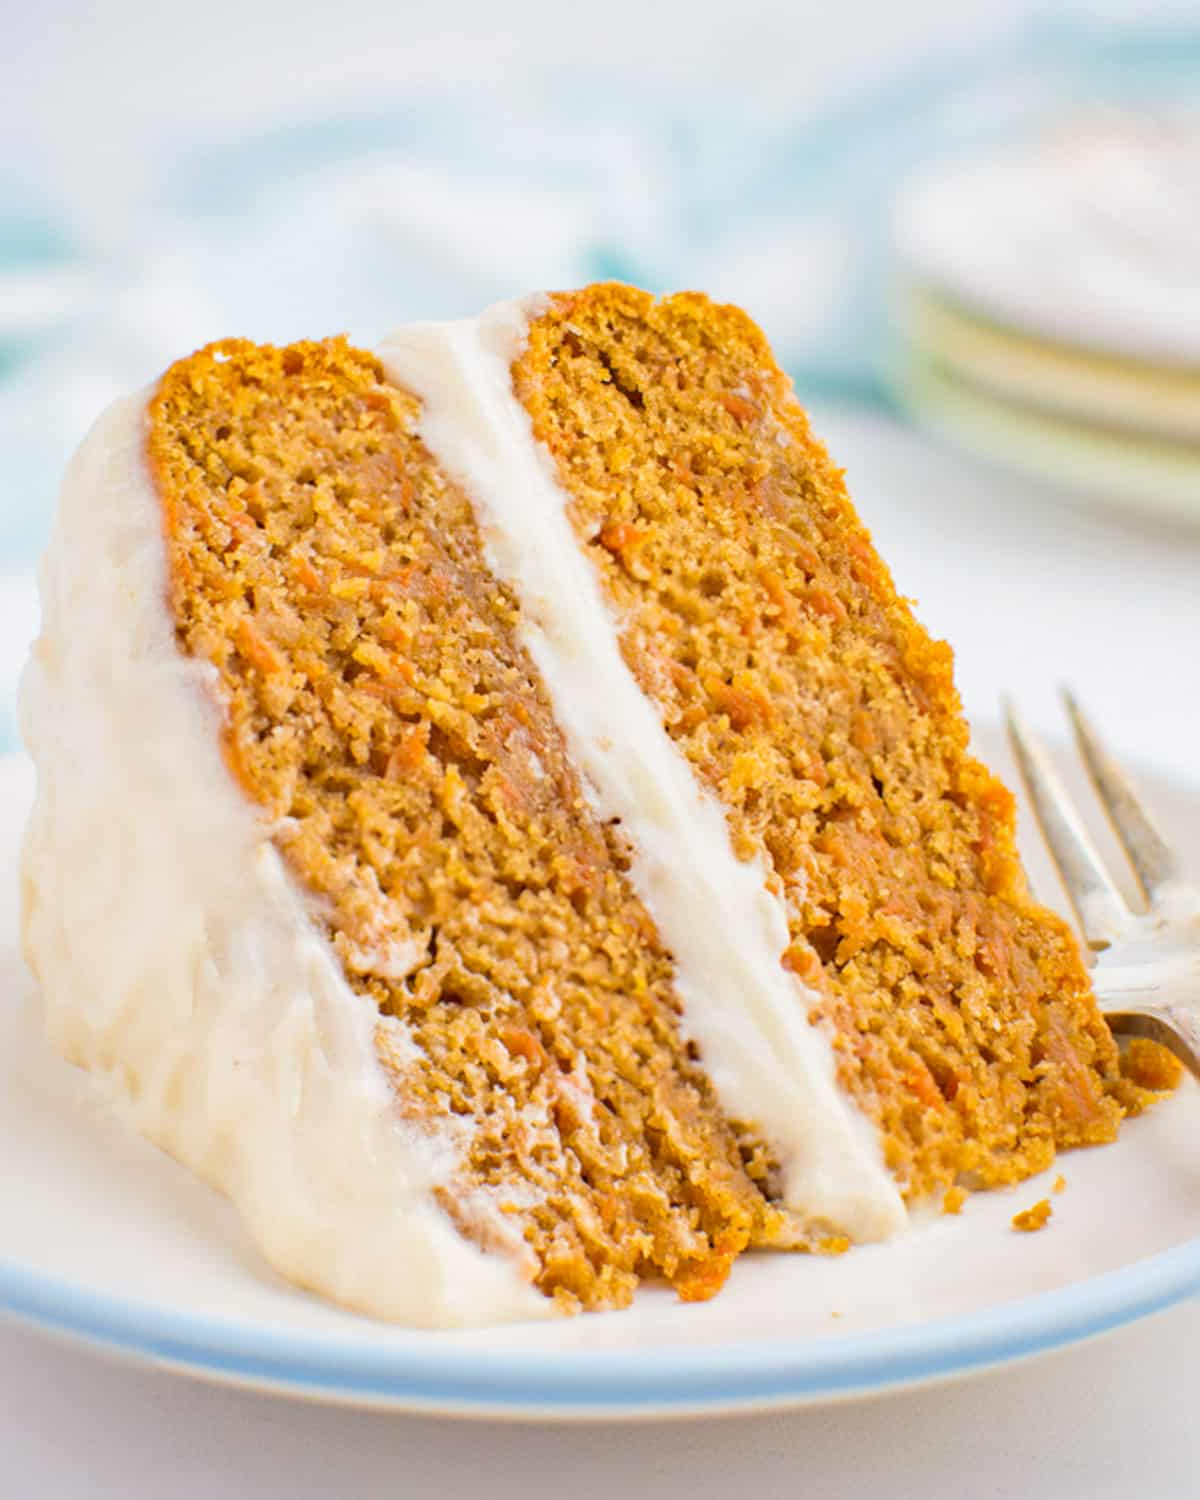 A plated slice of vegan carrot cake with cream cheese frosting.